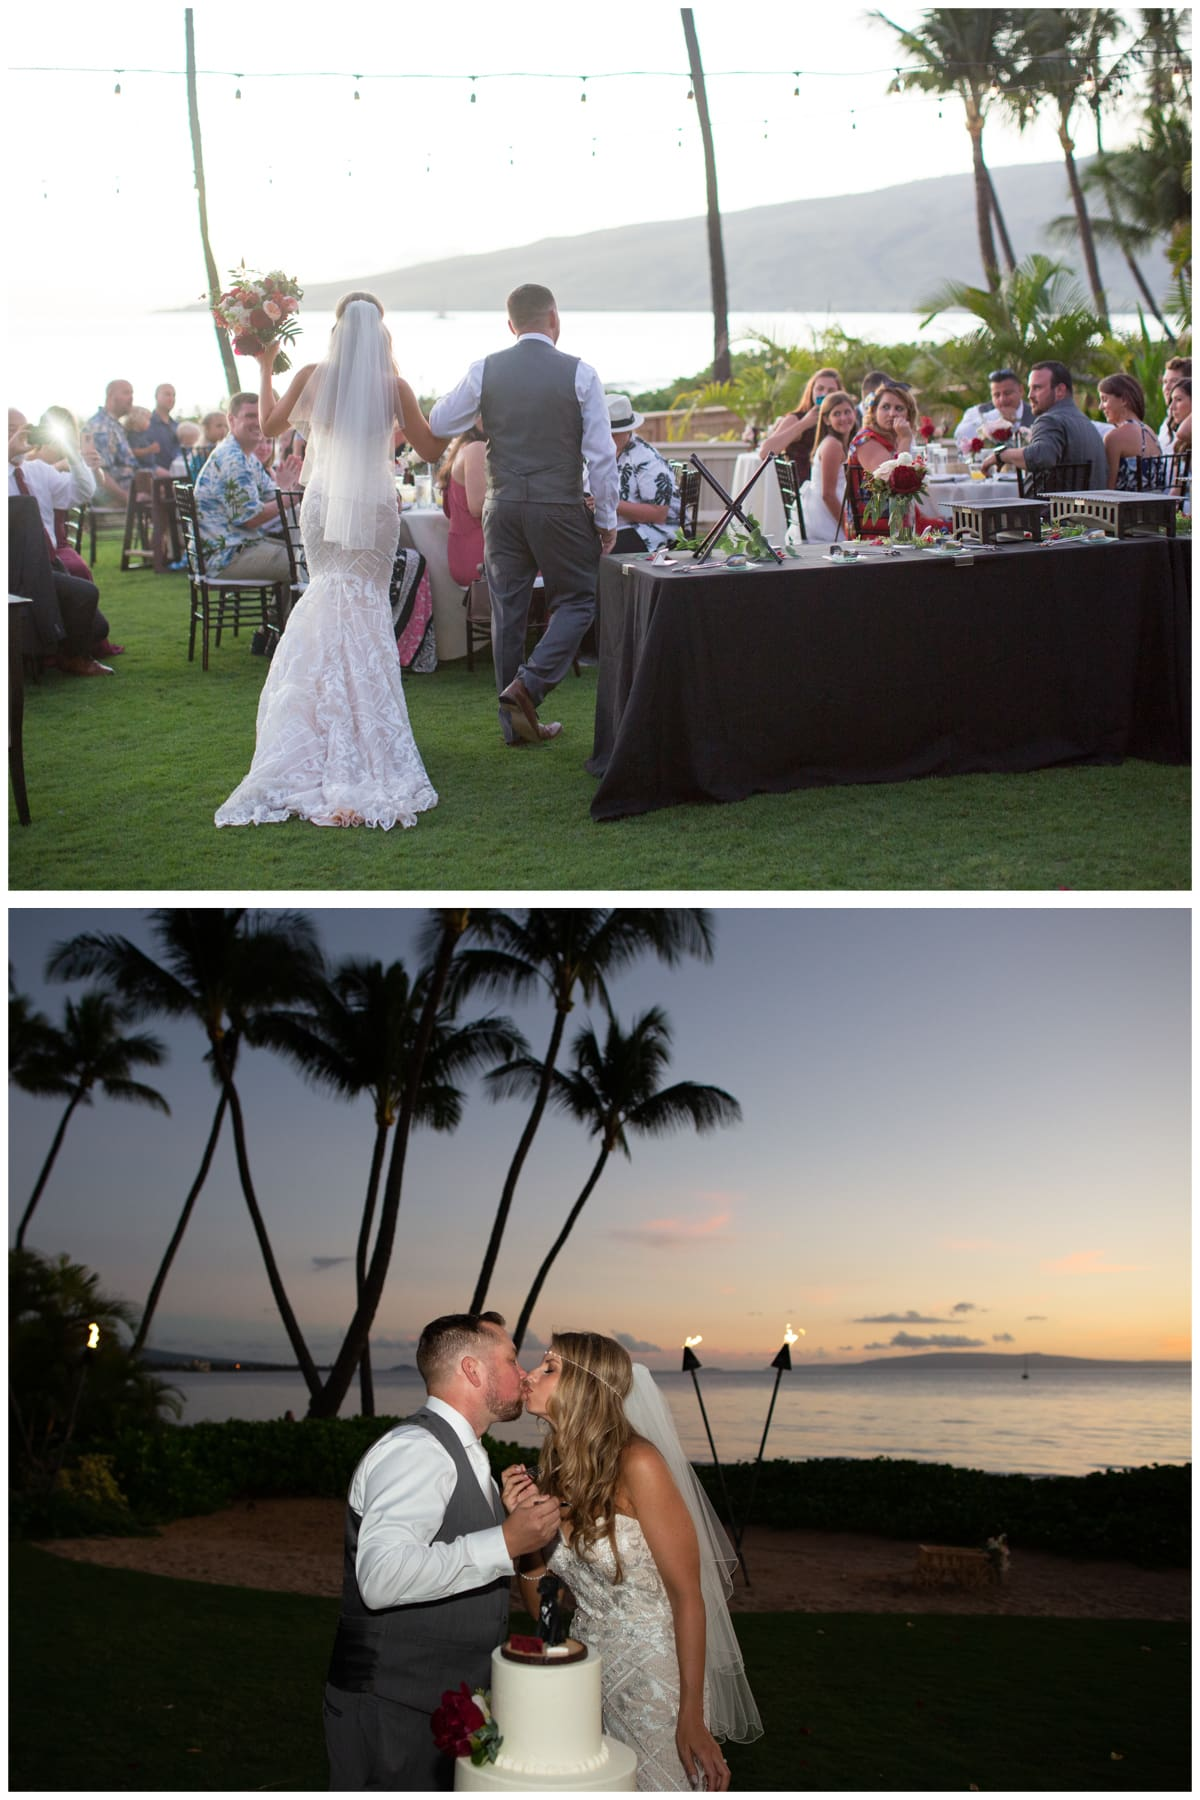 Maui Wedding Reception, Sugar Beach Events #hawaiiweddings #mauiwedding #sugarbeachwedding